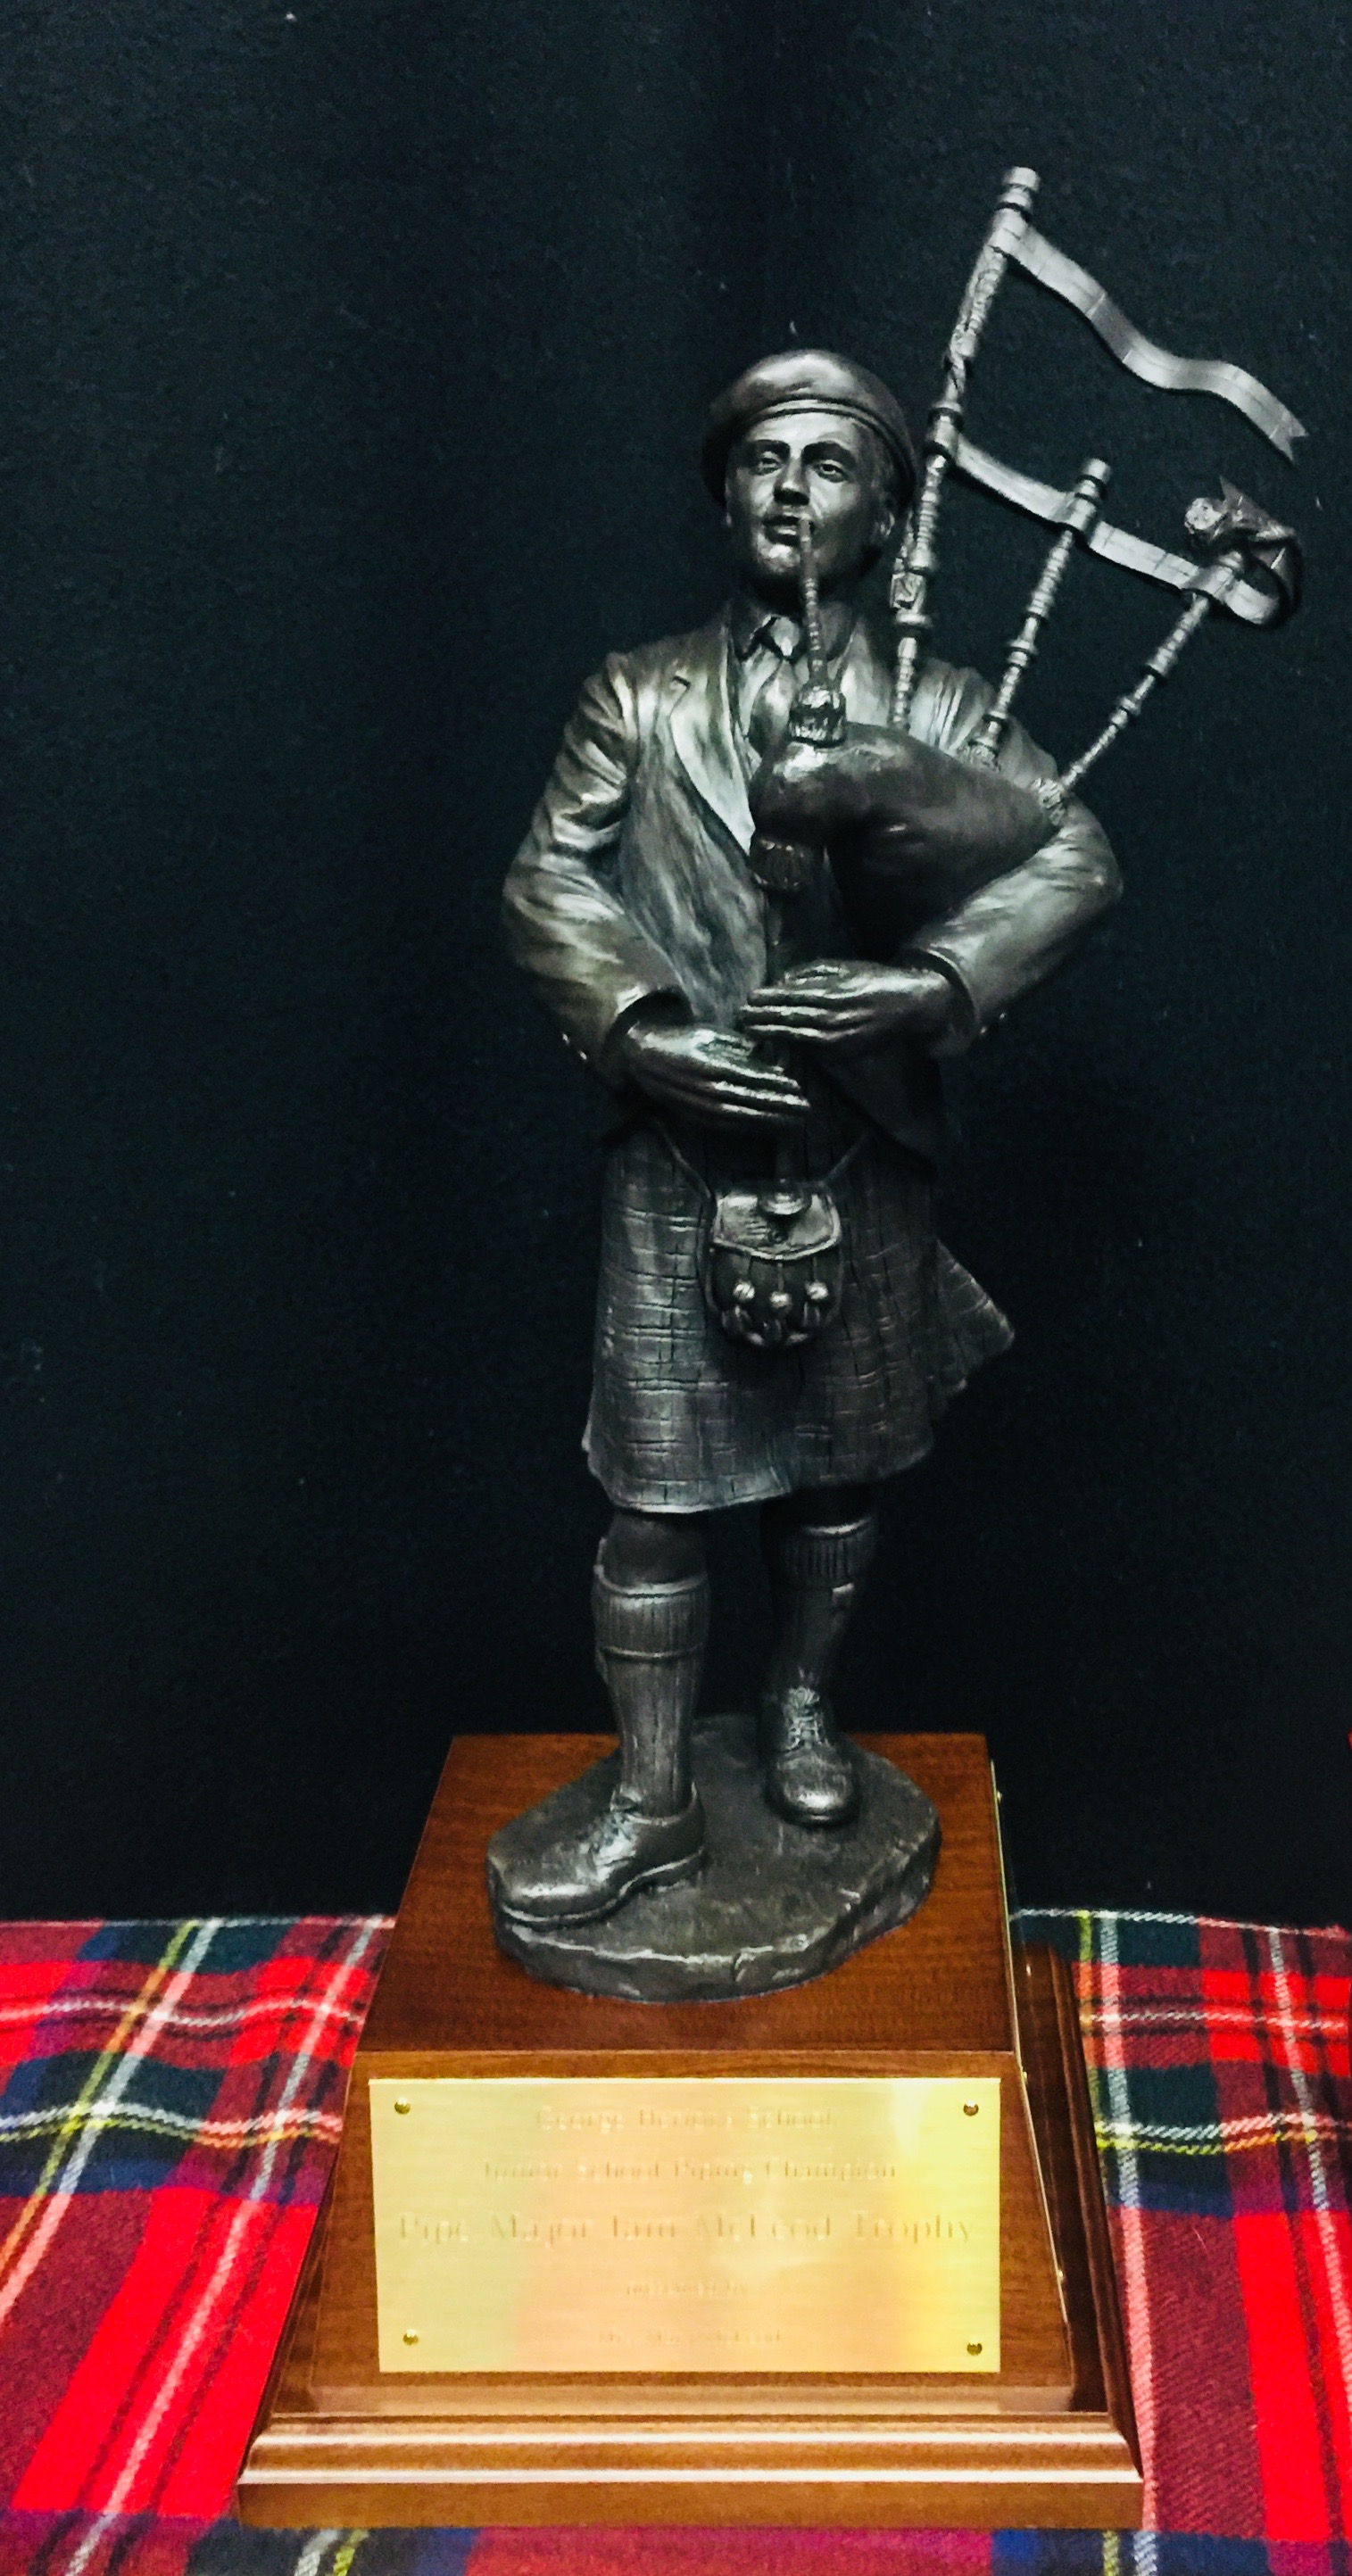 The new Iain McLeod trophy for the champion piper at George Heriot's School